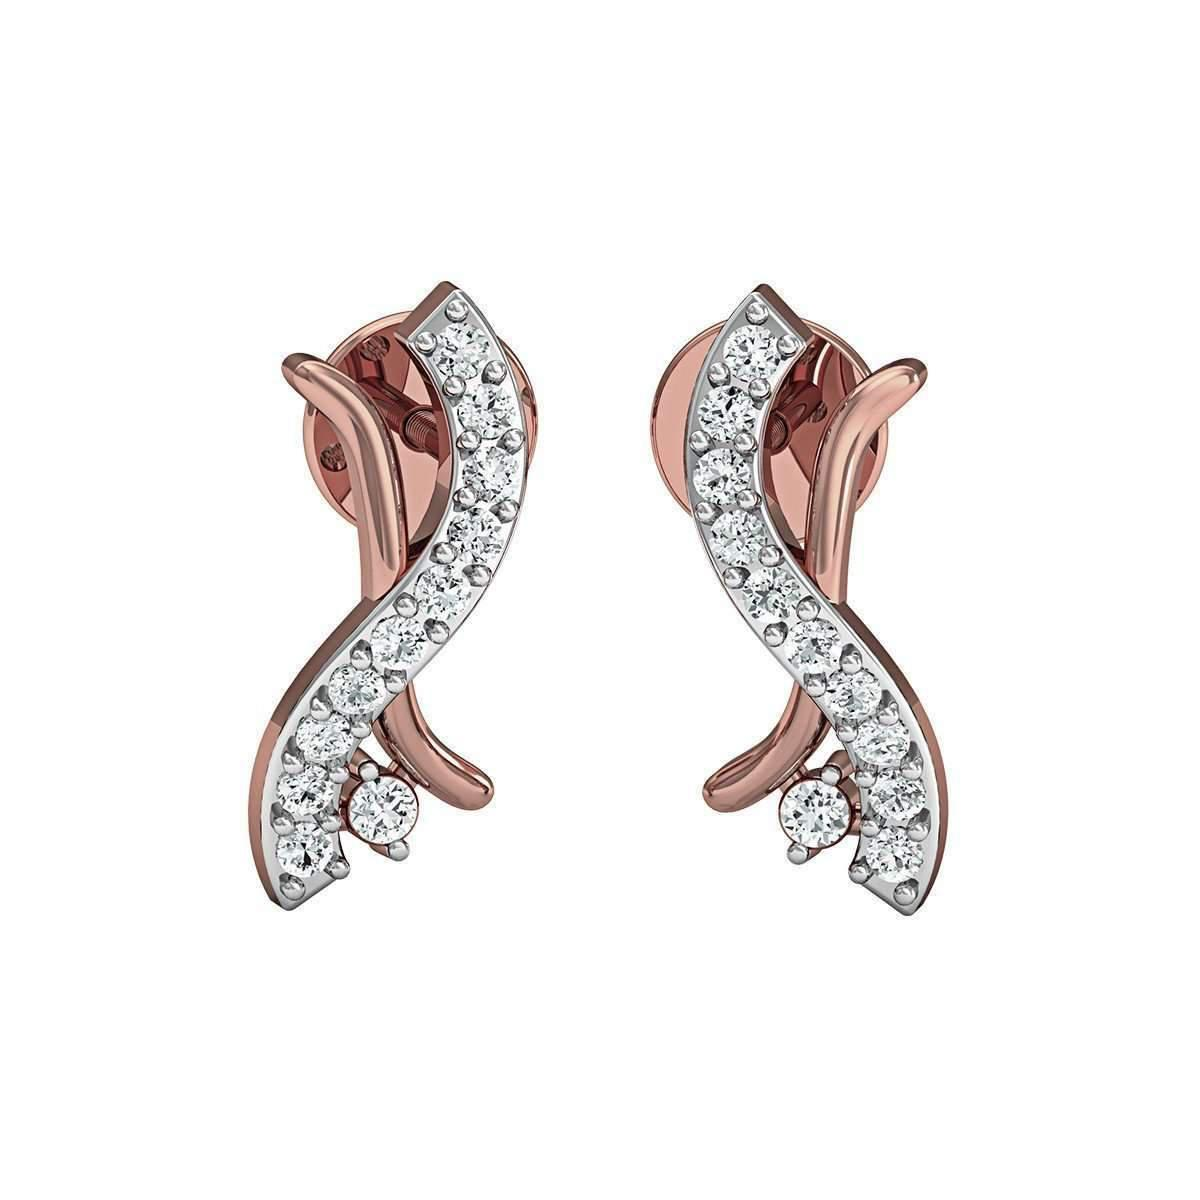 Diamoire Jewels 10kt Rose Gold and Diamond Earrings in Pave Setting 6FLYcB